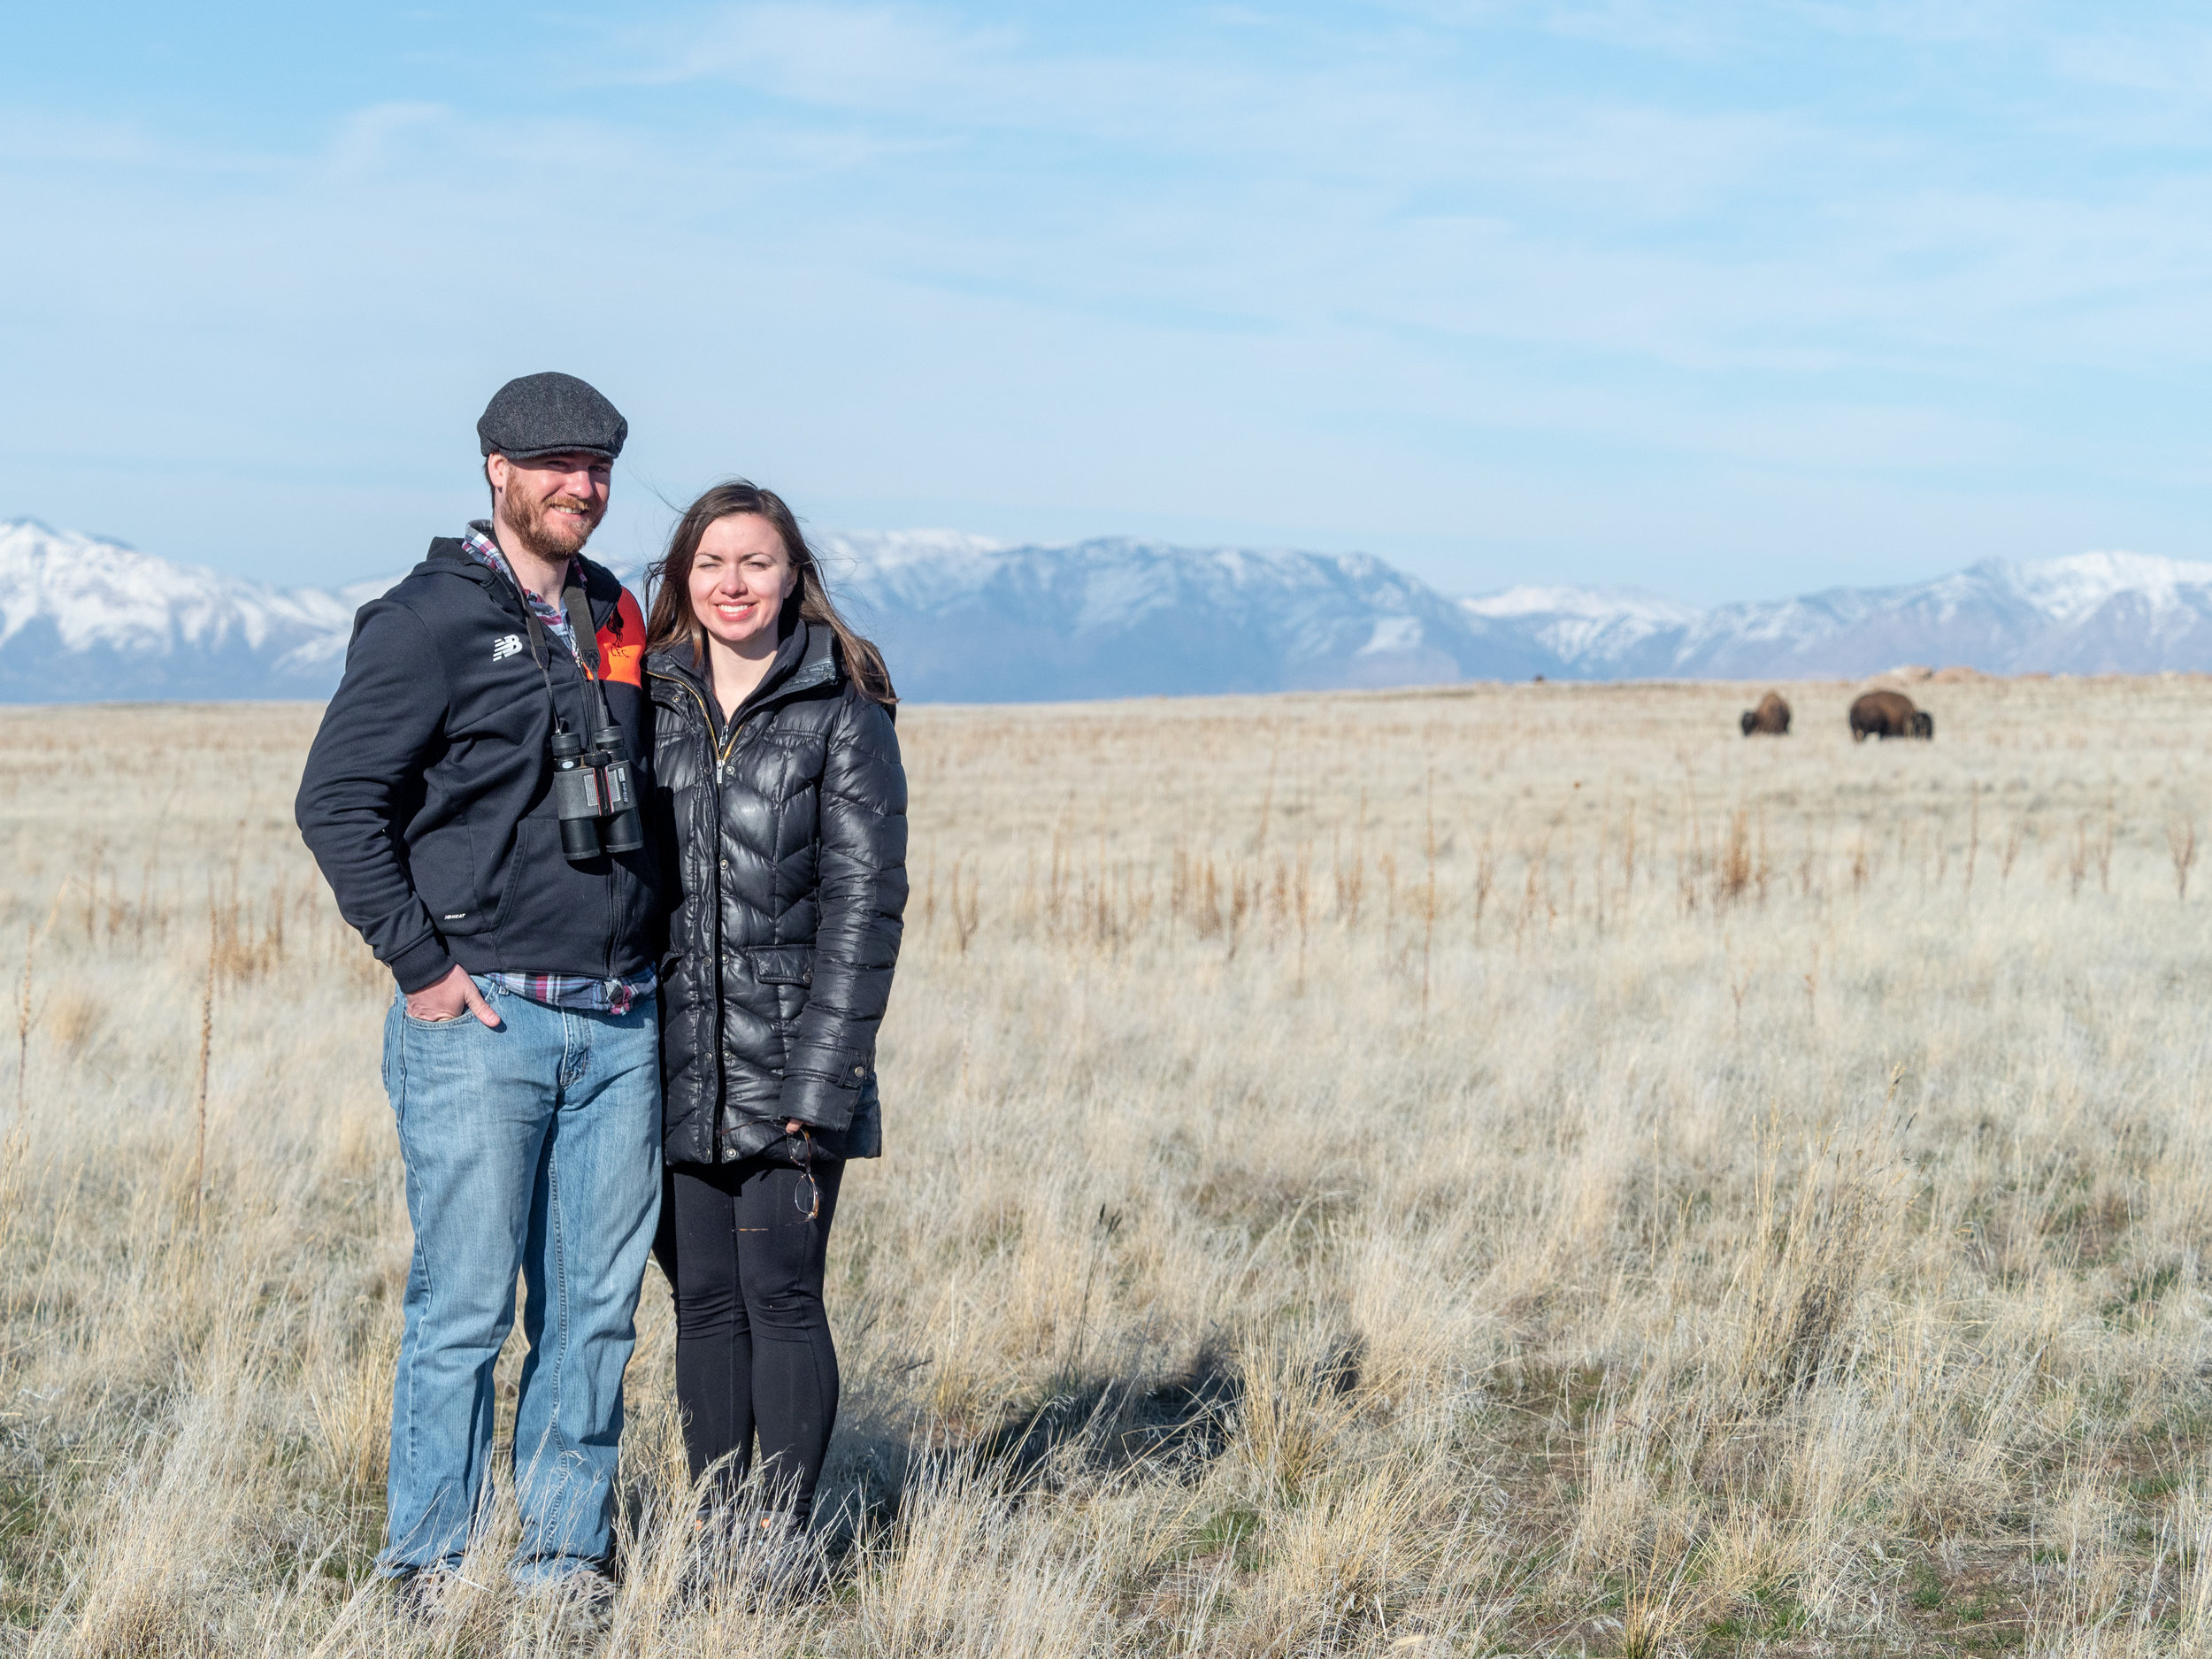 Evan & Katherine at Antelope Island in Utah | March 2019